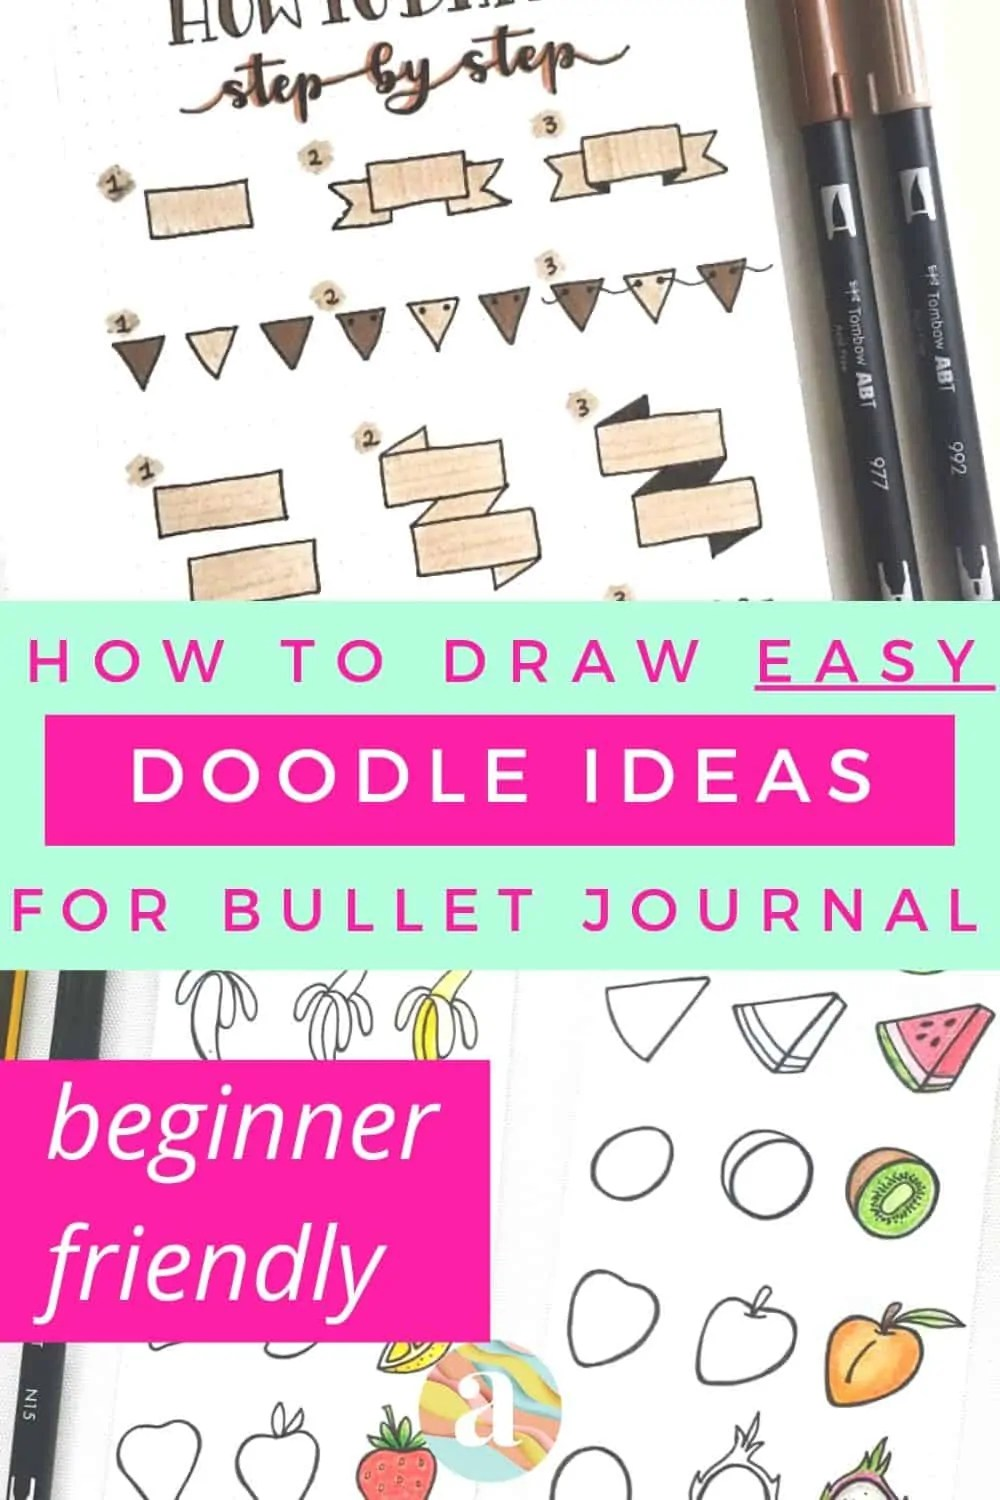 how to doodle ideas